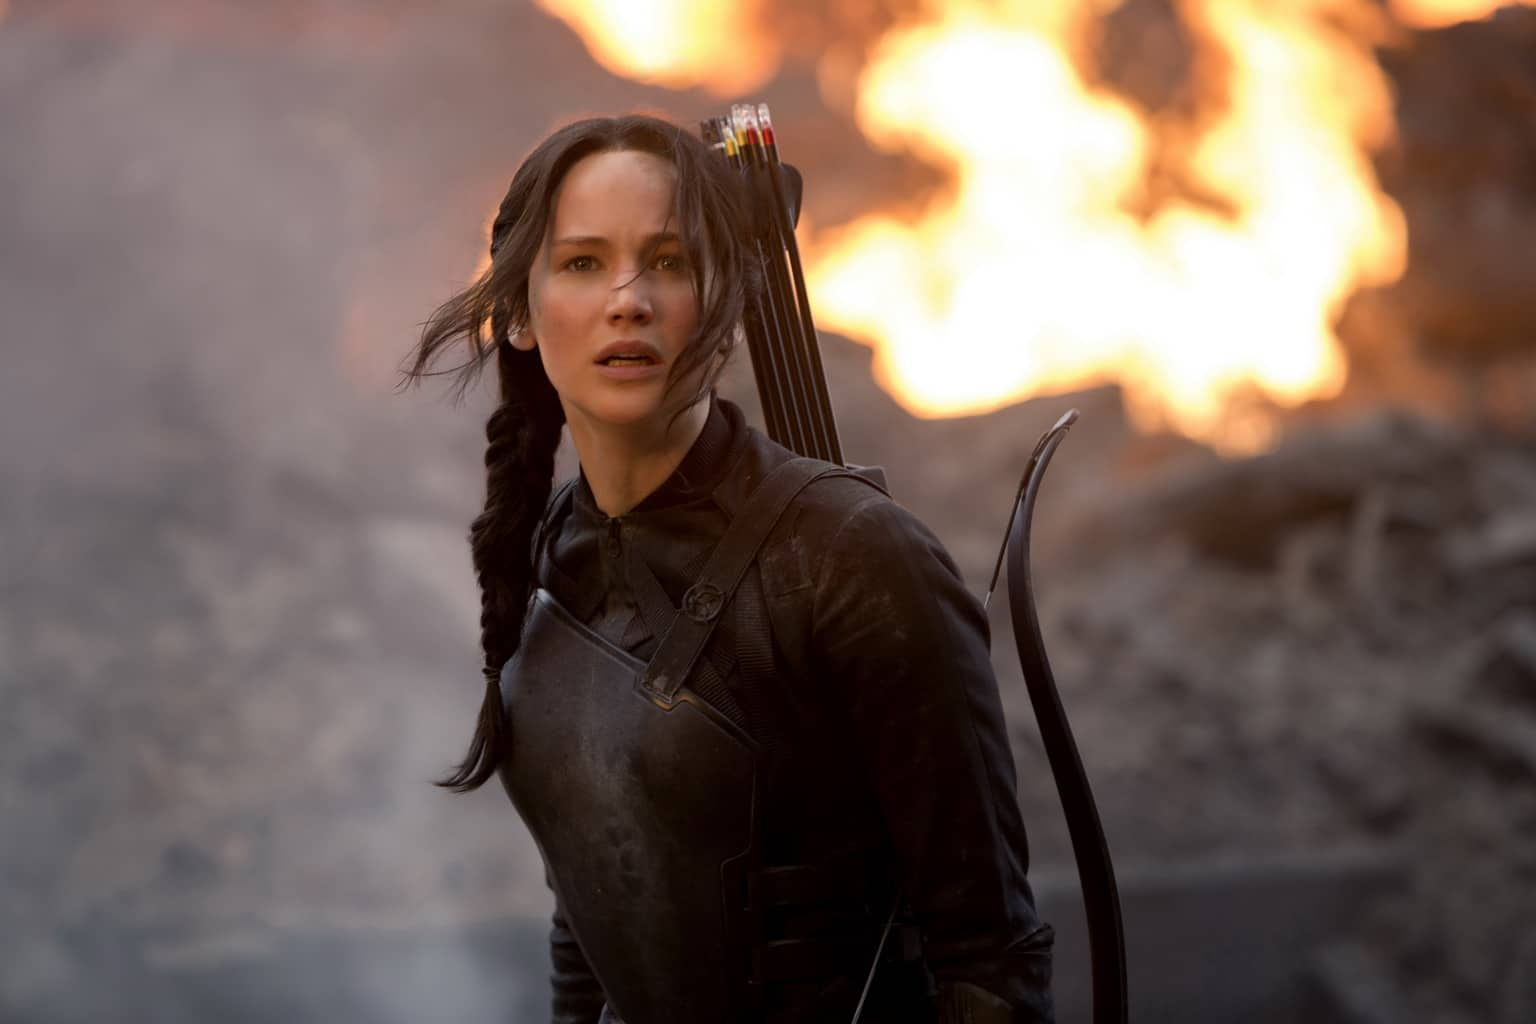 film reviews | movies | features | BRWC The Hunger Games - Mockingjay, Part 1 (Midnight Showing Review)